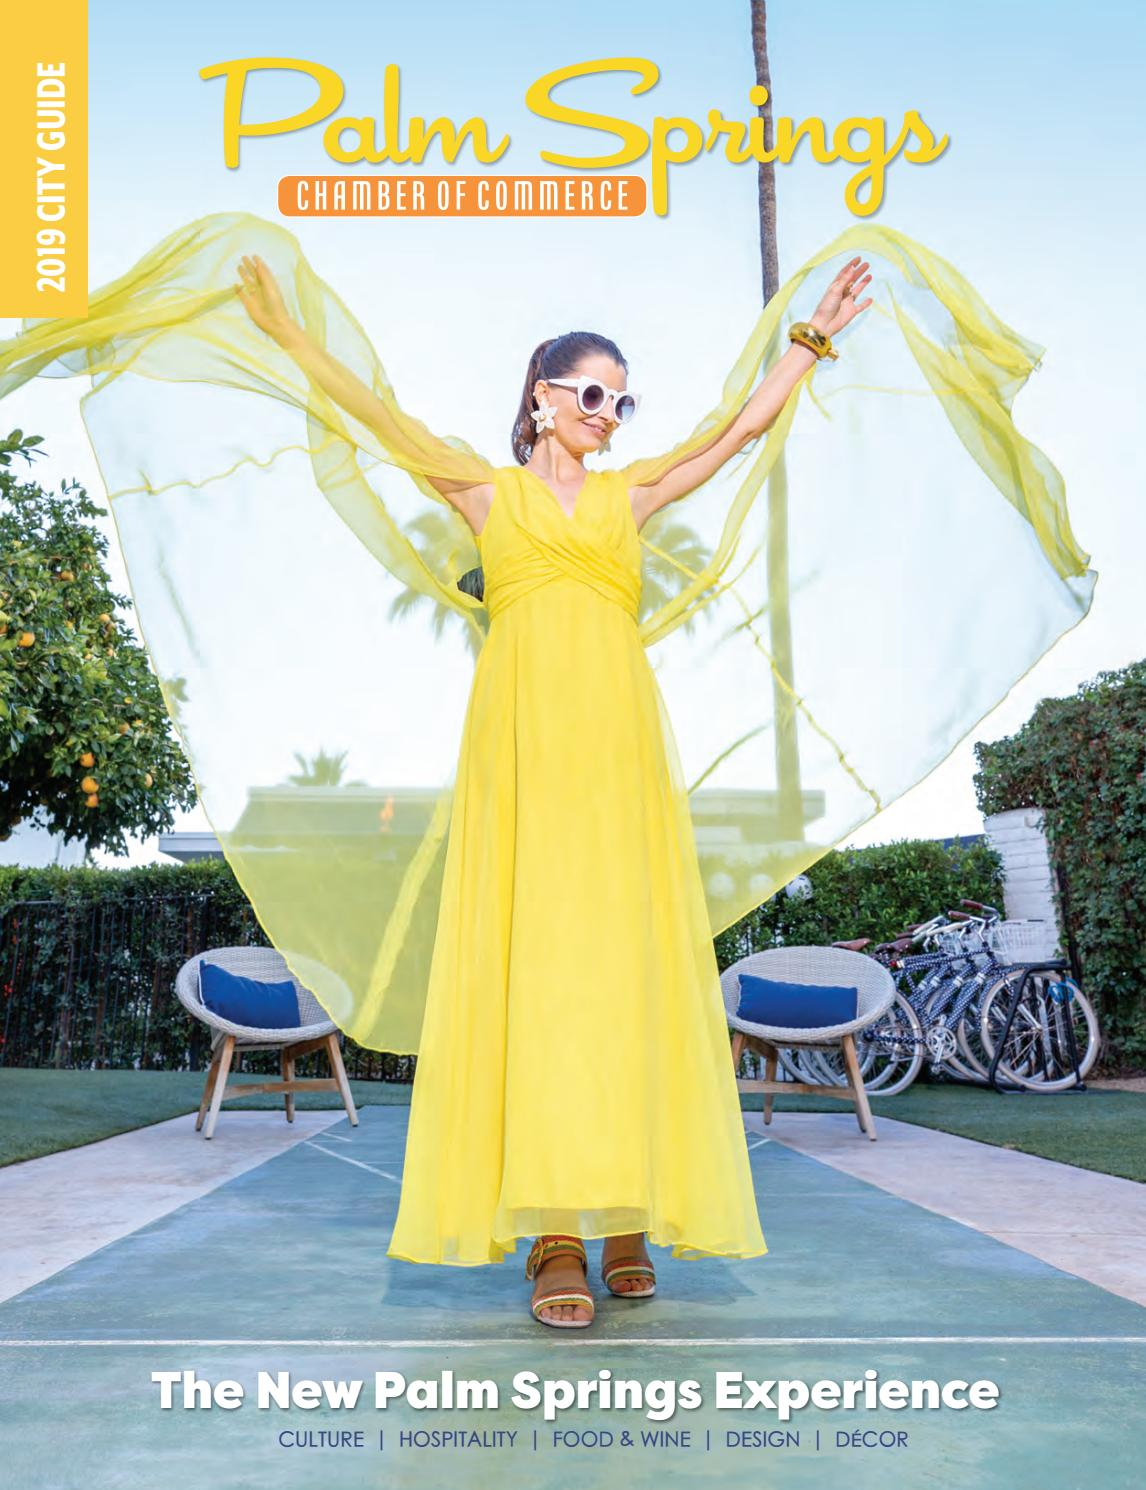 Palm Springs Chamber Of Commerce City Guide 2019 By Ps Chamber City Guide Issuu